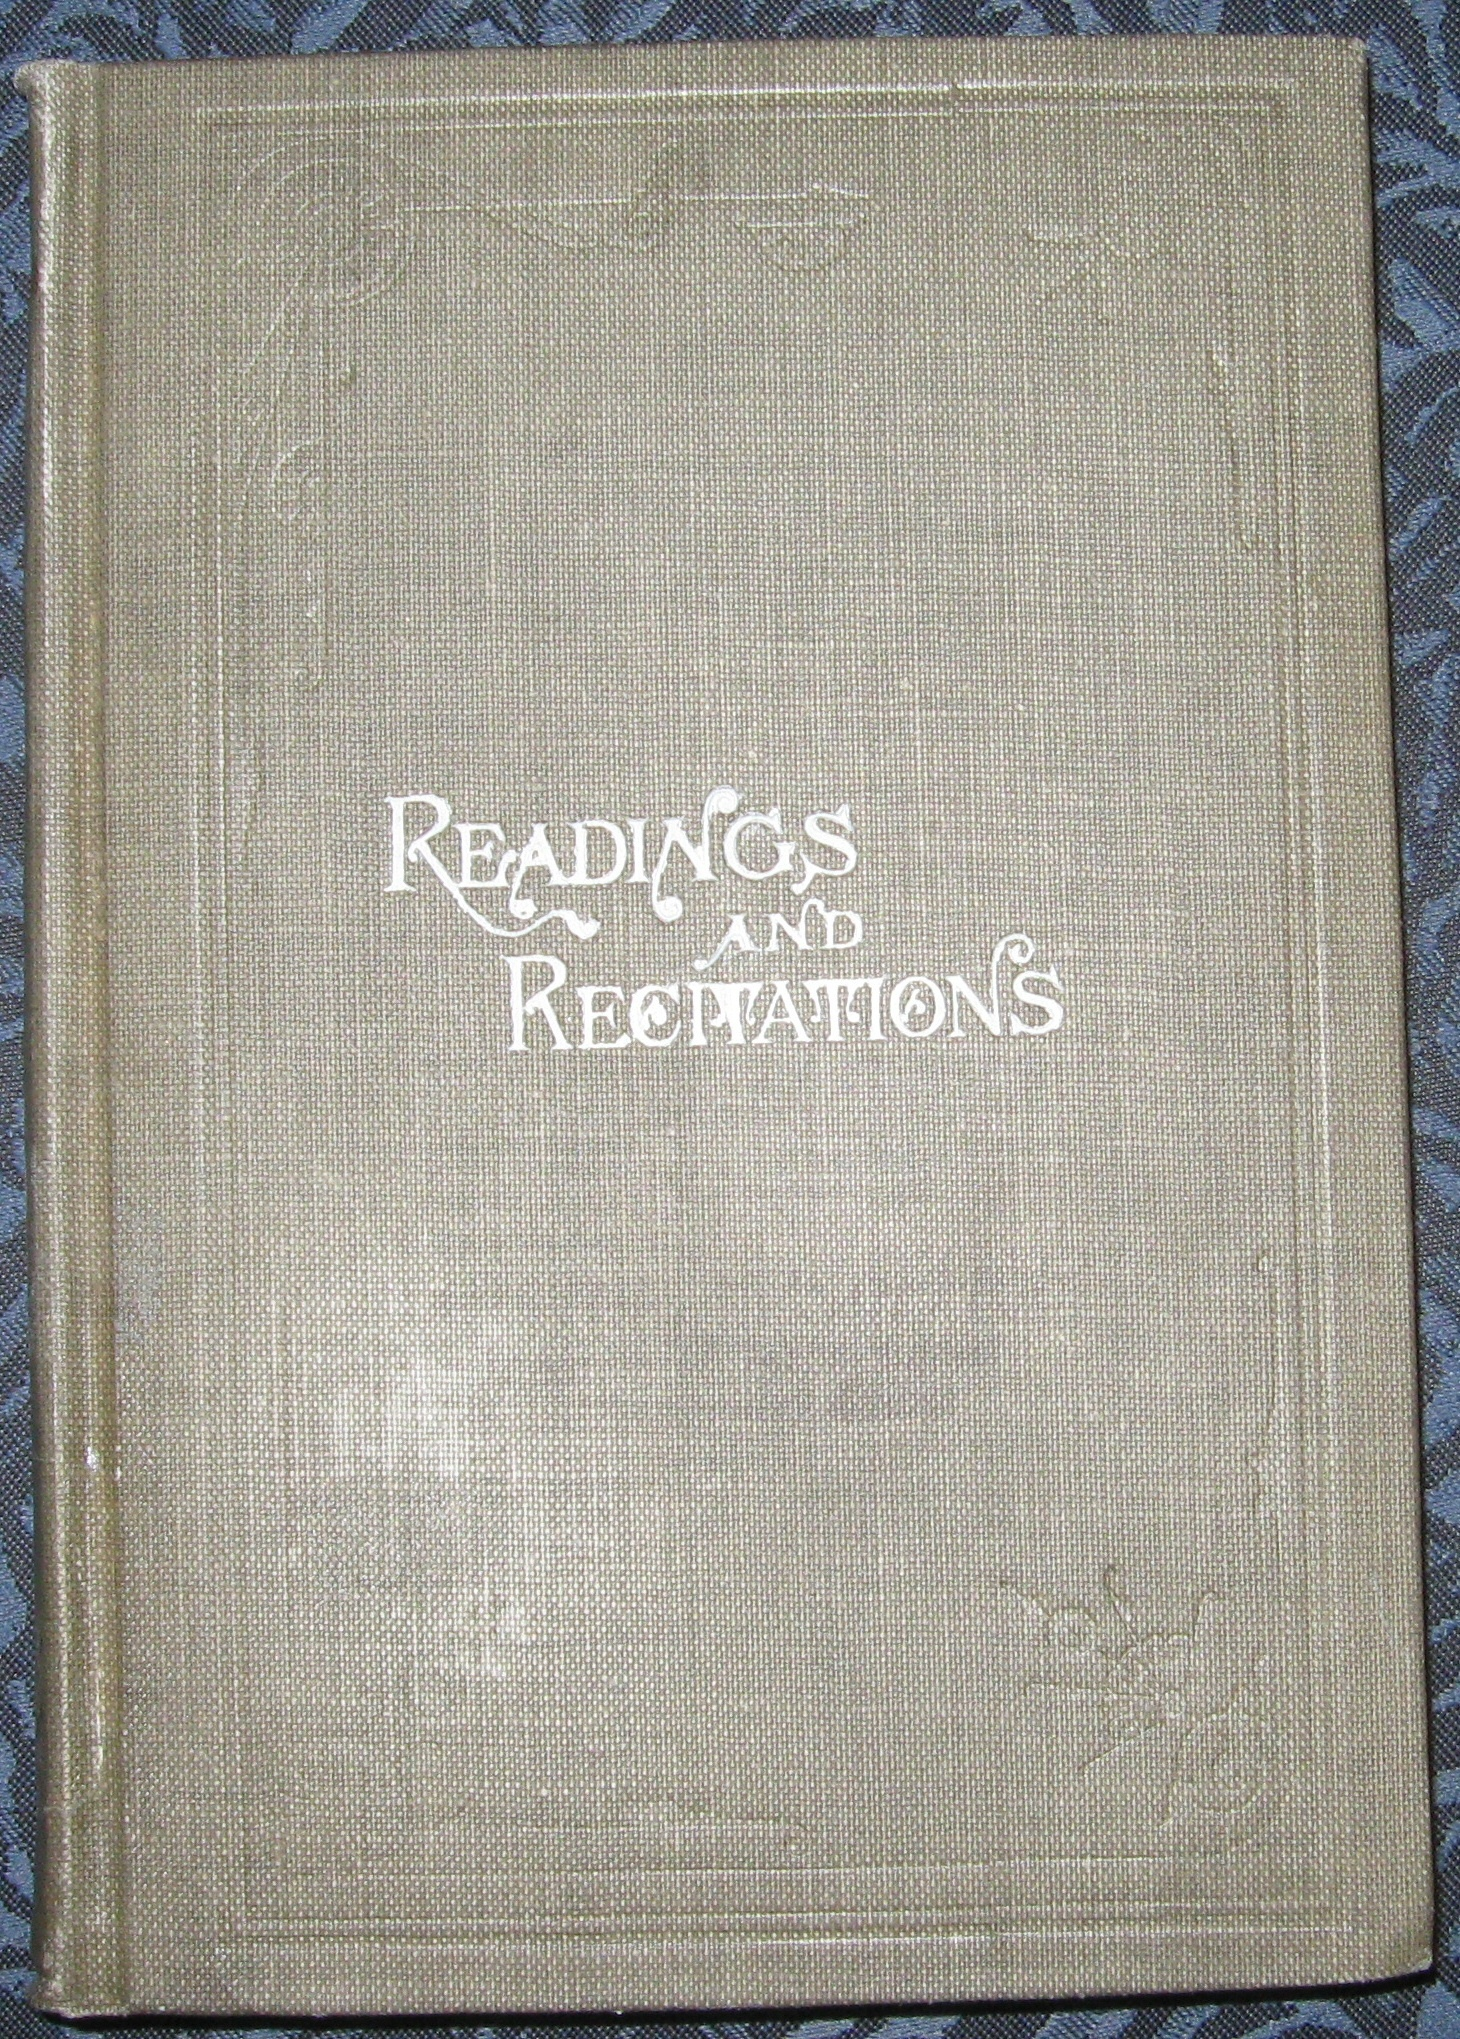 Choice readings and recitations  Selected and arranged, Paul, J. H